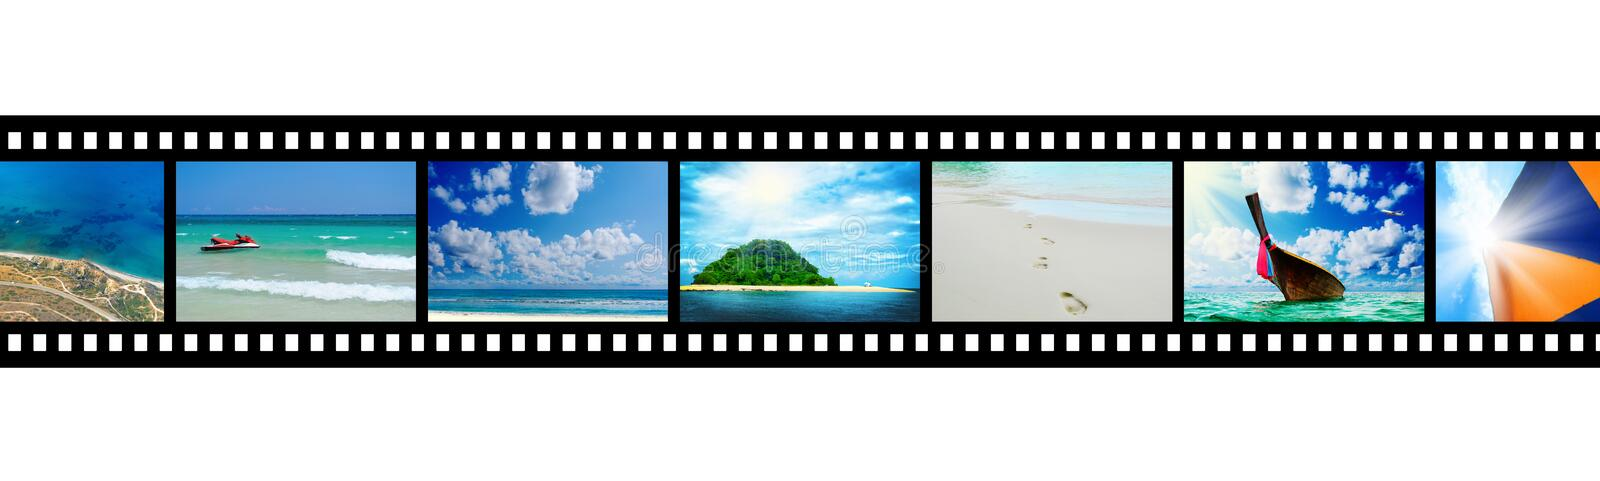 Film strip with beautiful holiday pictures royalty free illustration